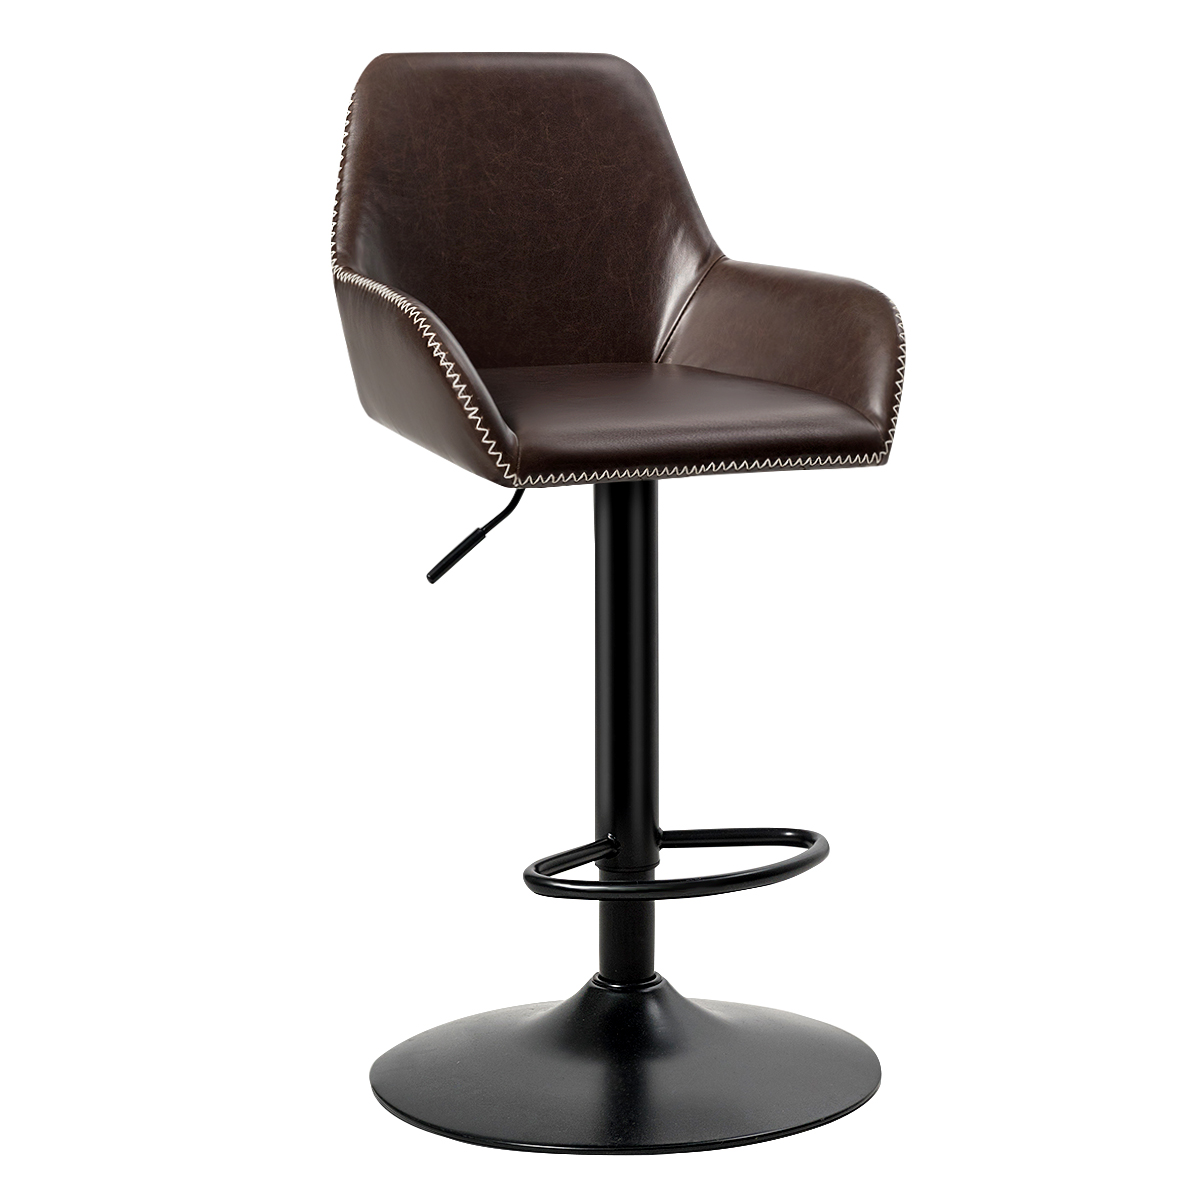 Costway Modern Retro Adjustable Swivel Bar Stool Upholstered Chair